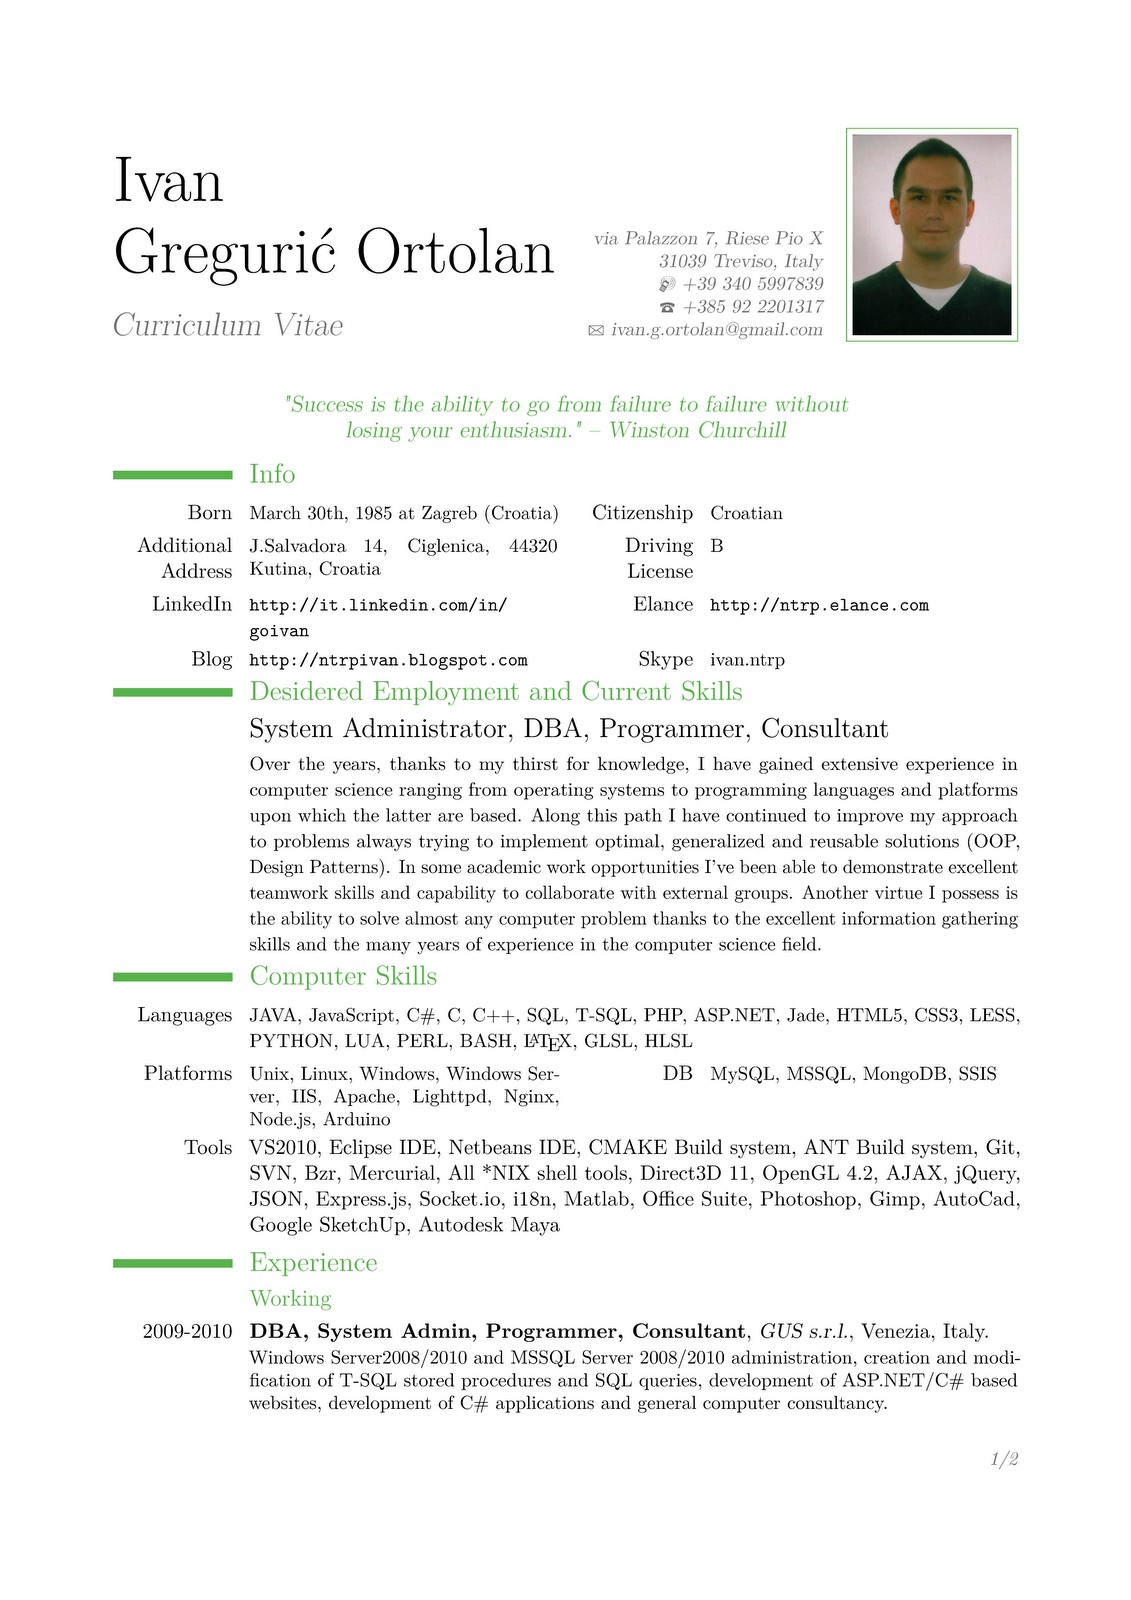 sample resume. curriculum vitae sample. resume and cv format cv ...